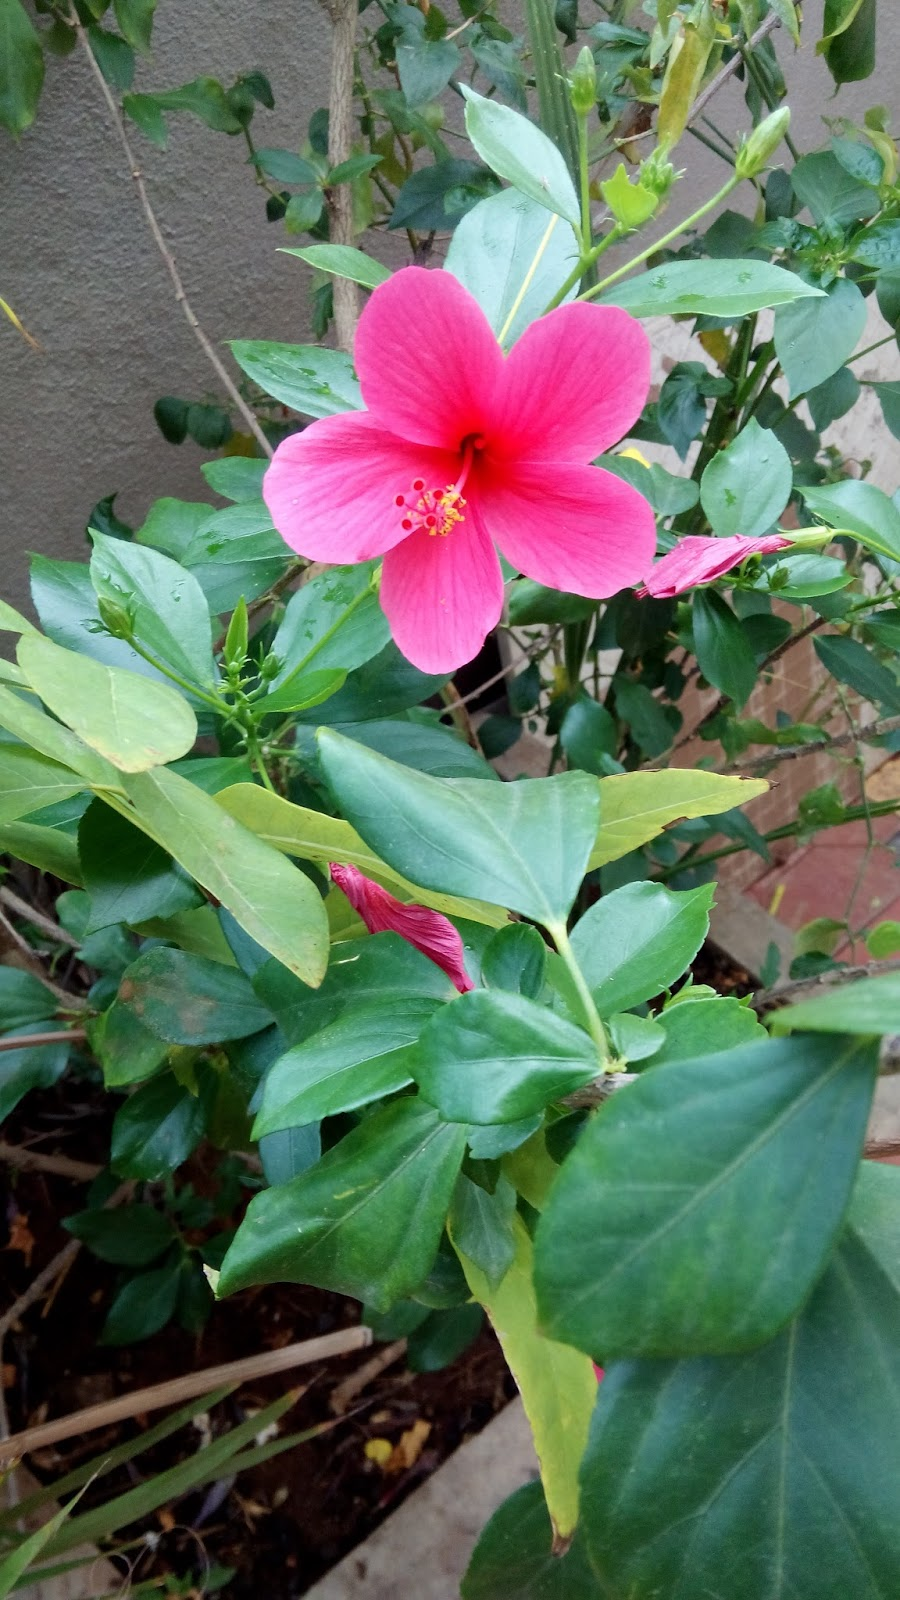 Garden care simplified hibiscus practical plant care in winter and hibiscus practical plant care in winter and my dream flowers paintings who knows i might get it orange plants from seeds parrot flower and sontakka plants izmirmasajfo Image collections